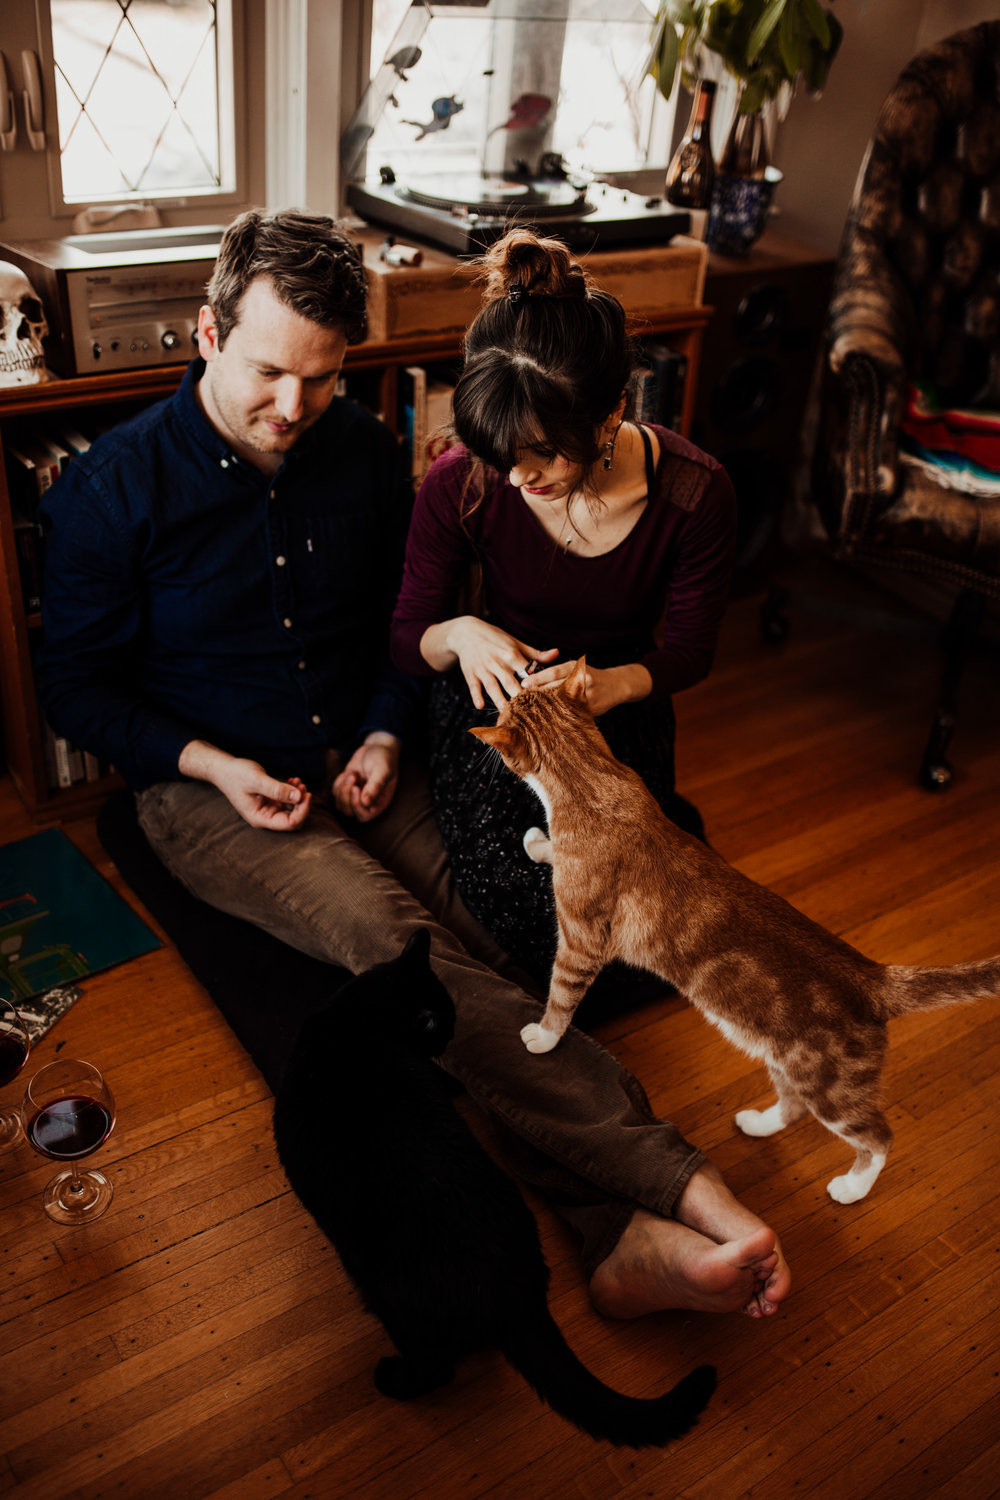 louisville-engagement-photographer-record-store-in-home-session-crystal-ludwick-photo (21 of 53).jpg